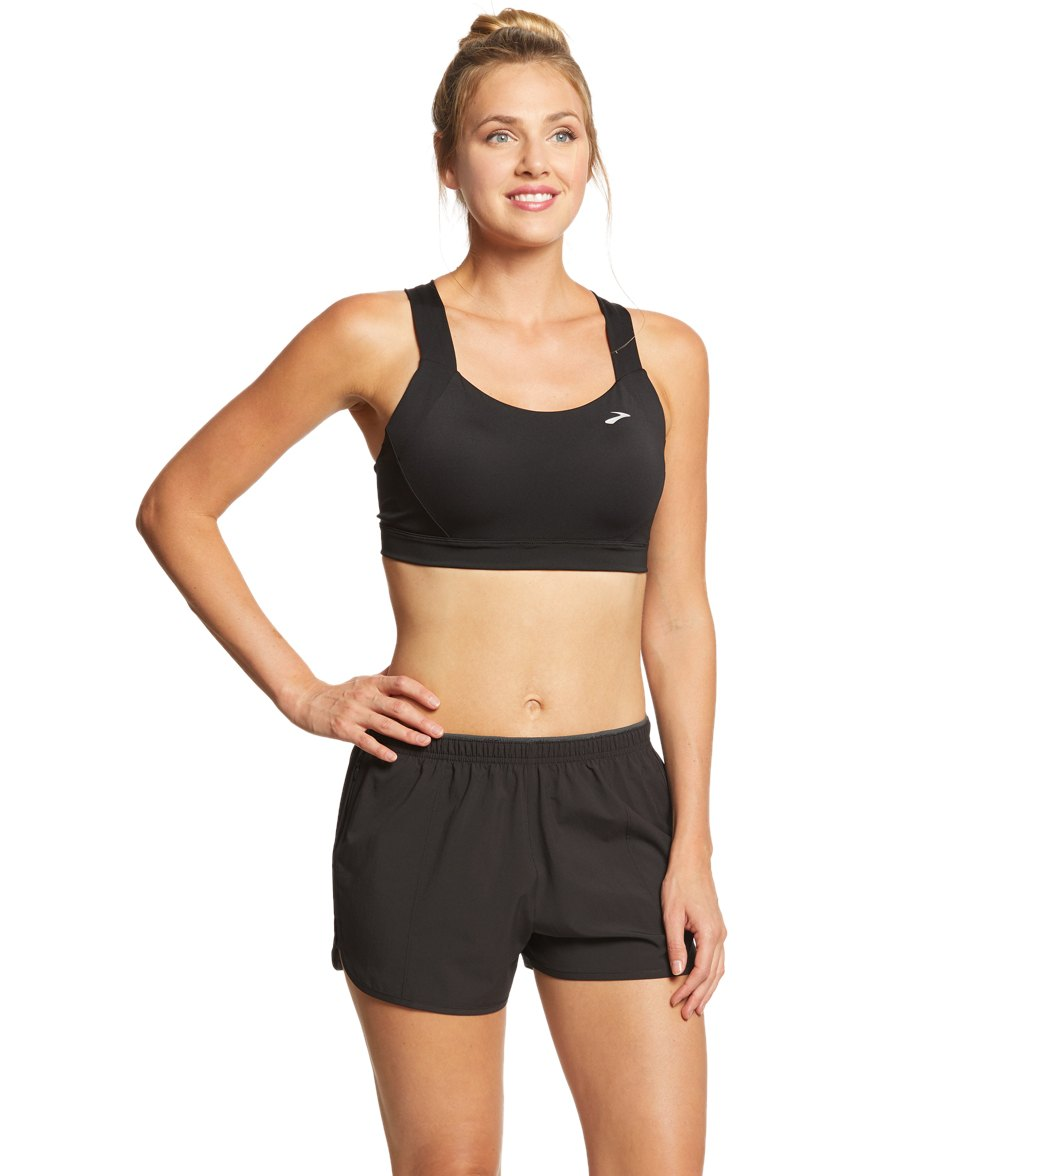 55bbed76195df Brooks Women s Uphold Crossback DD E Cup Sports Bra at SwimOutlet.com